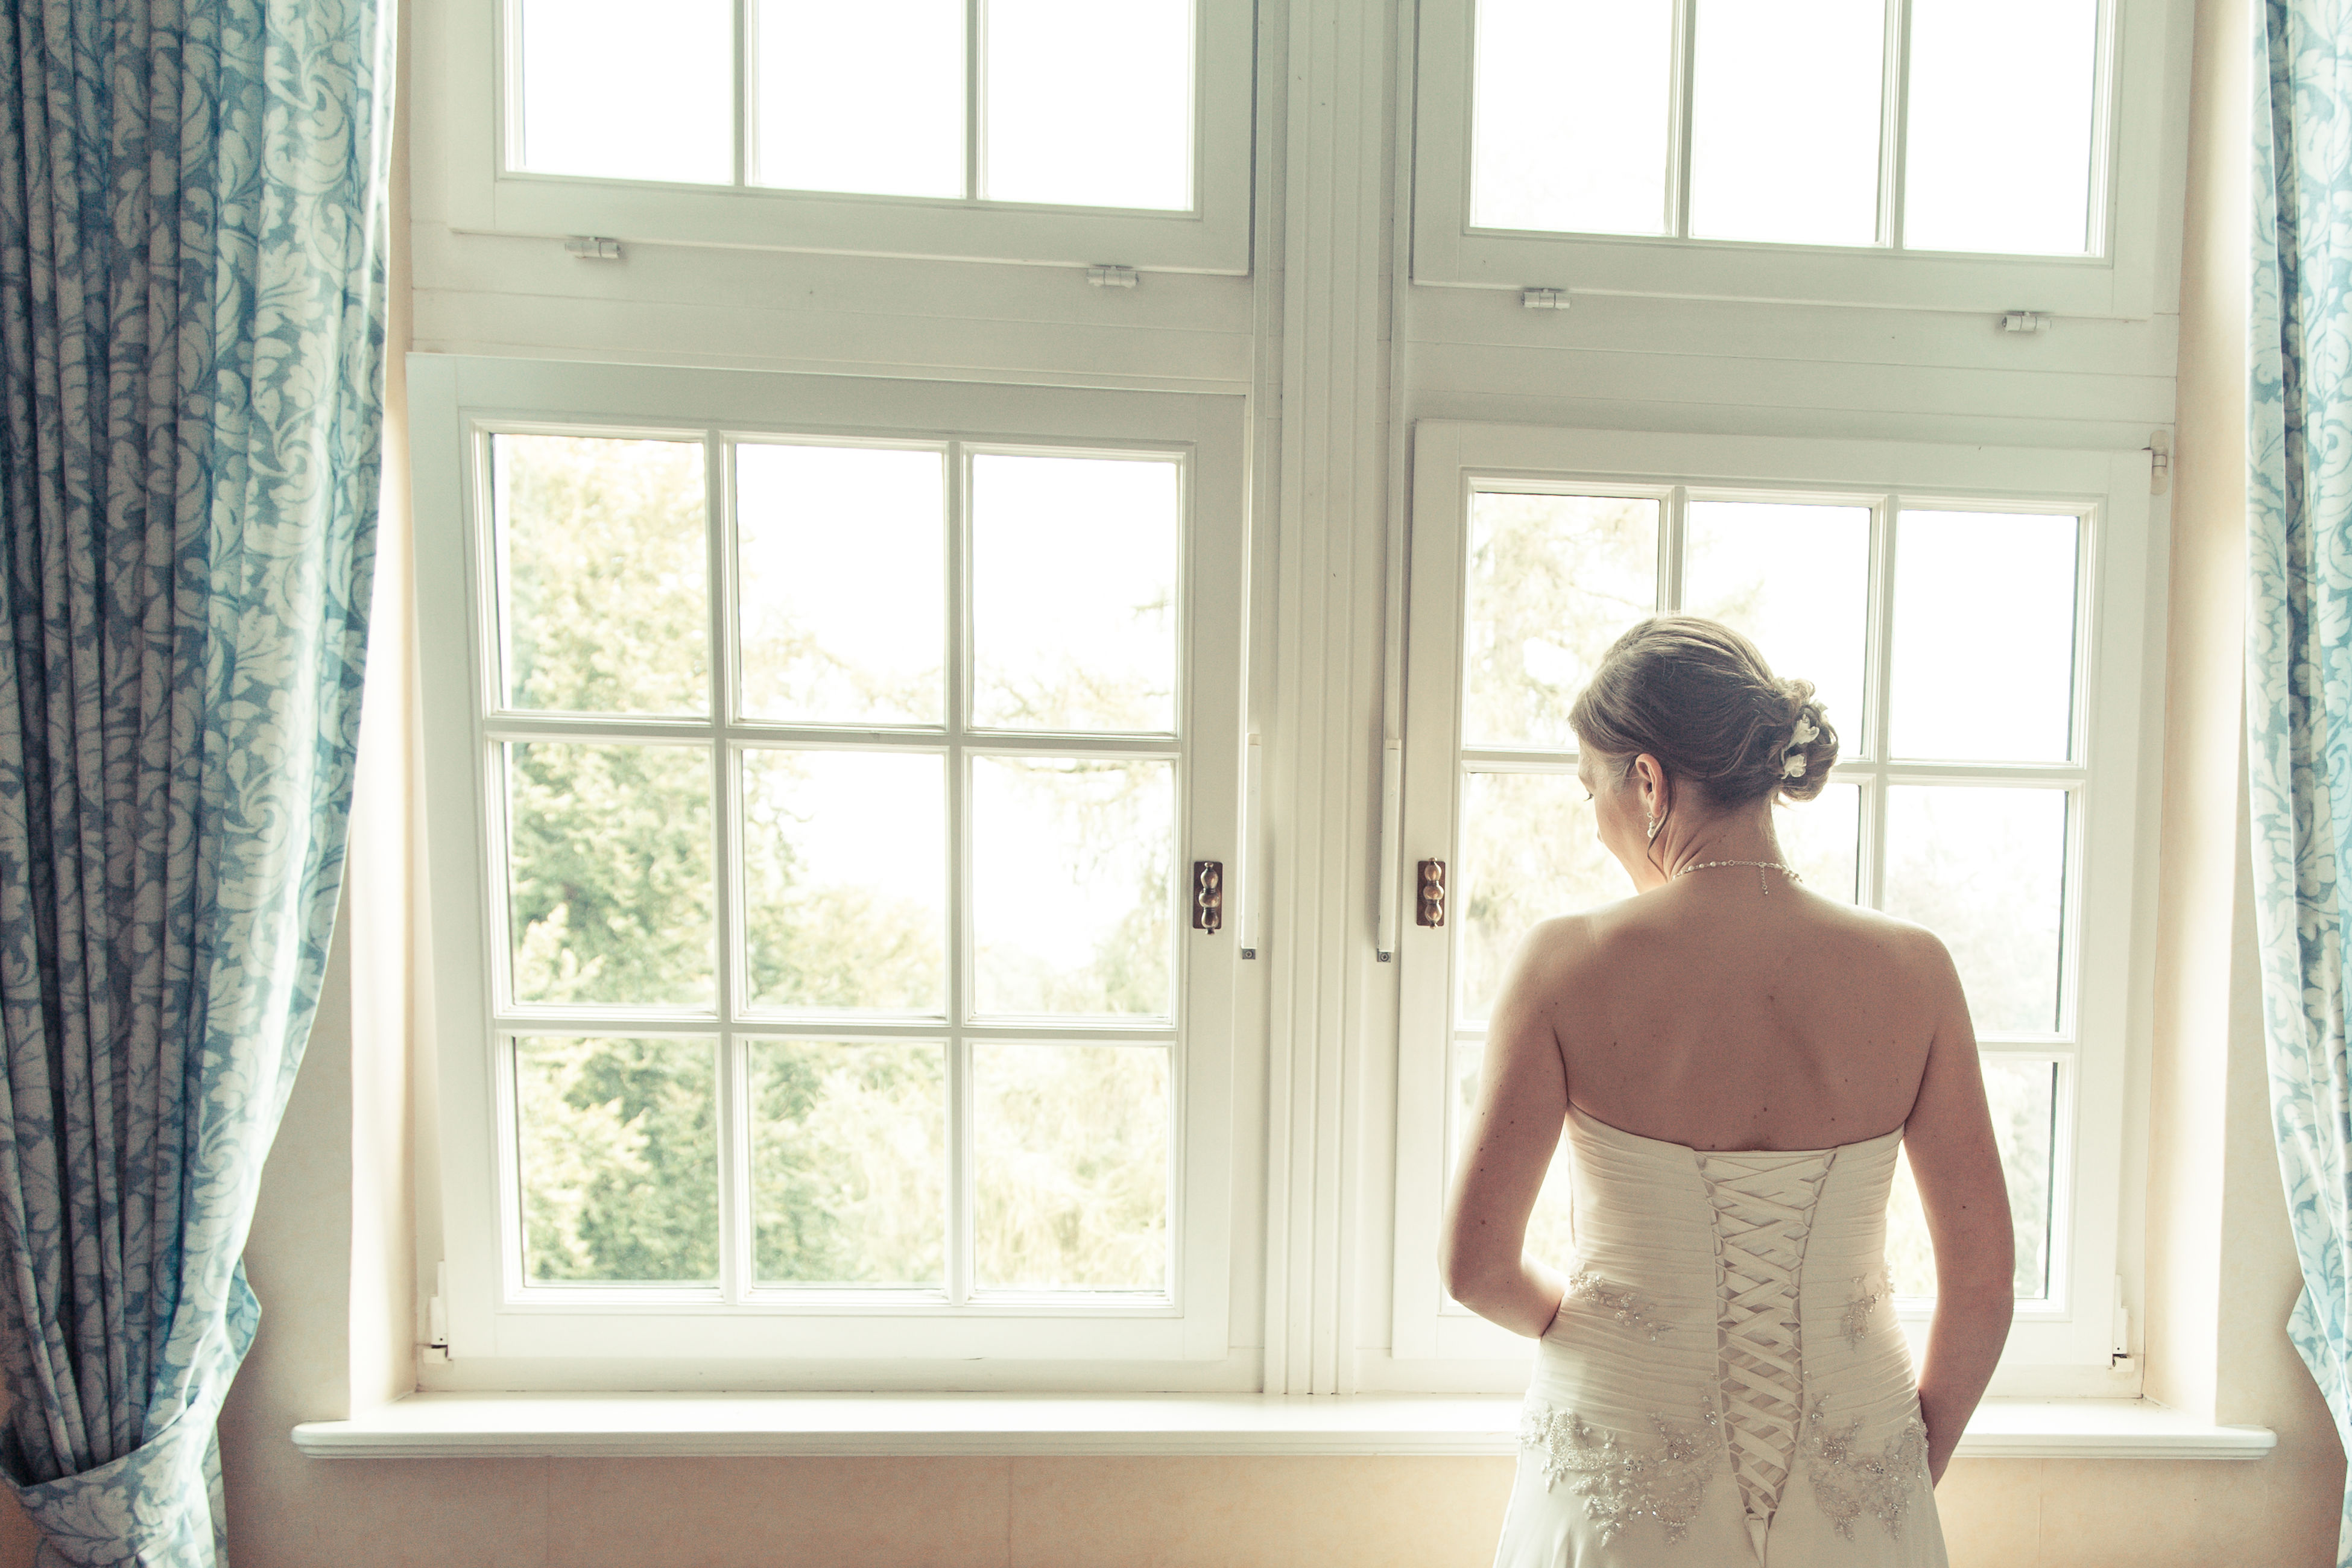 window, one person, indoors, standing, day, rear view, real people, looking through window, sunlight, young adult, beautiful woman, evening gown, wedding dress, one woman only, bride, adult, people, adults only